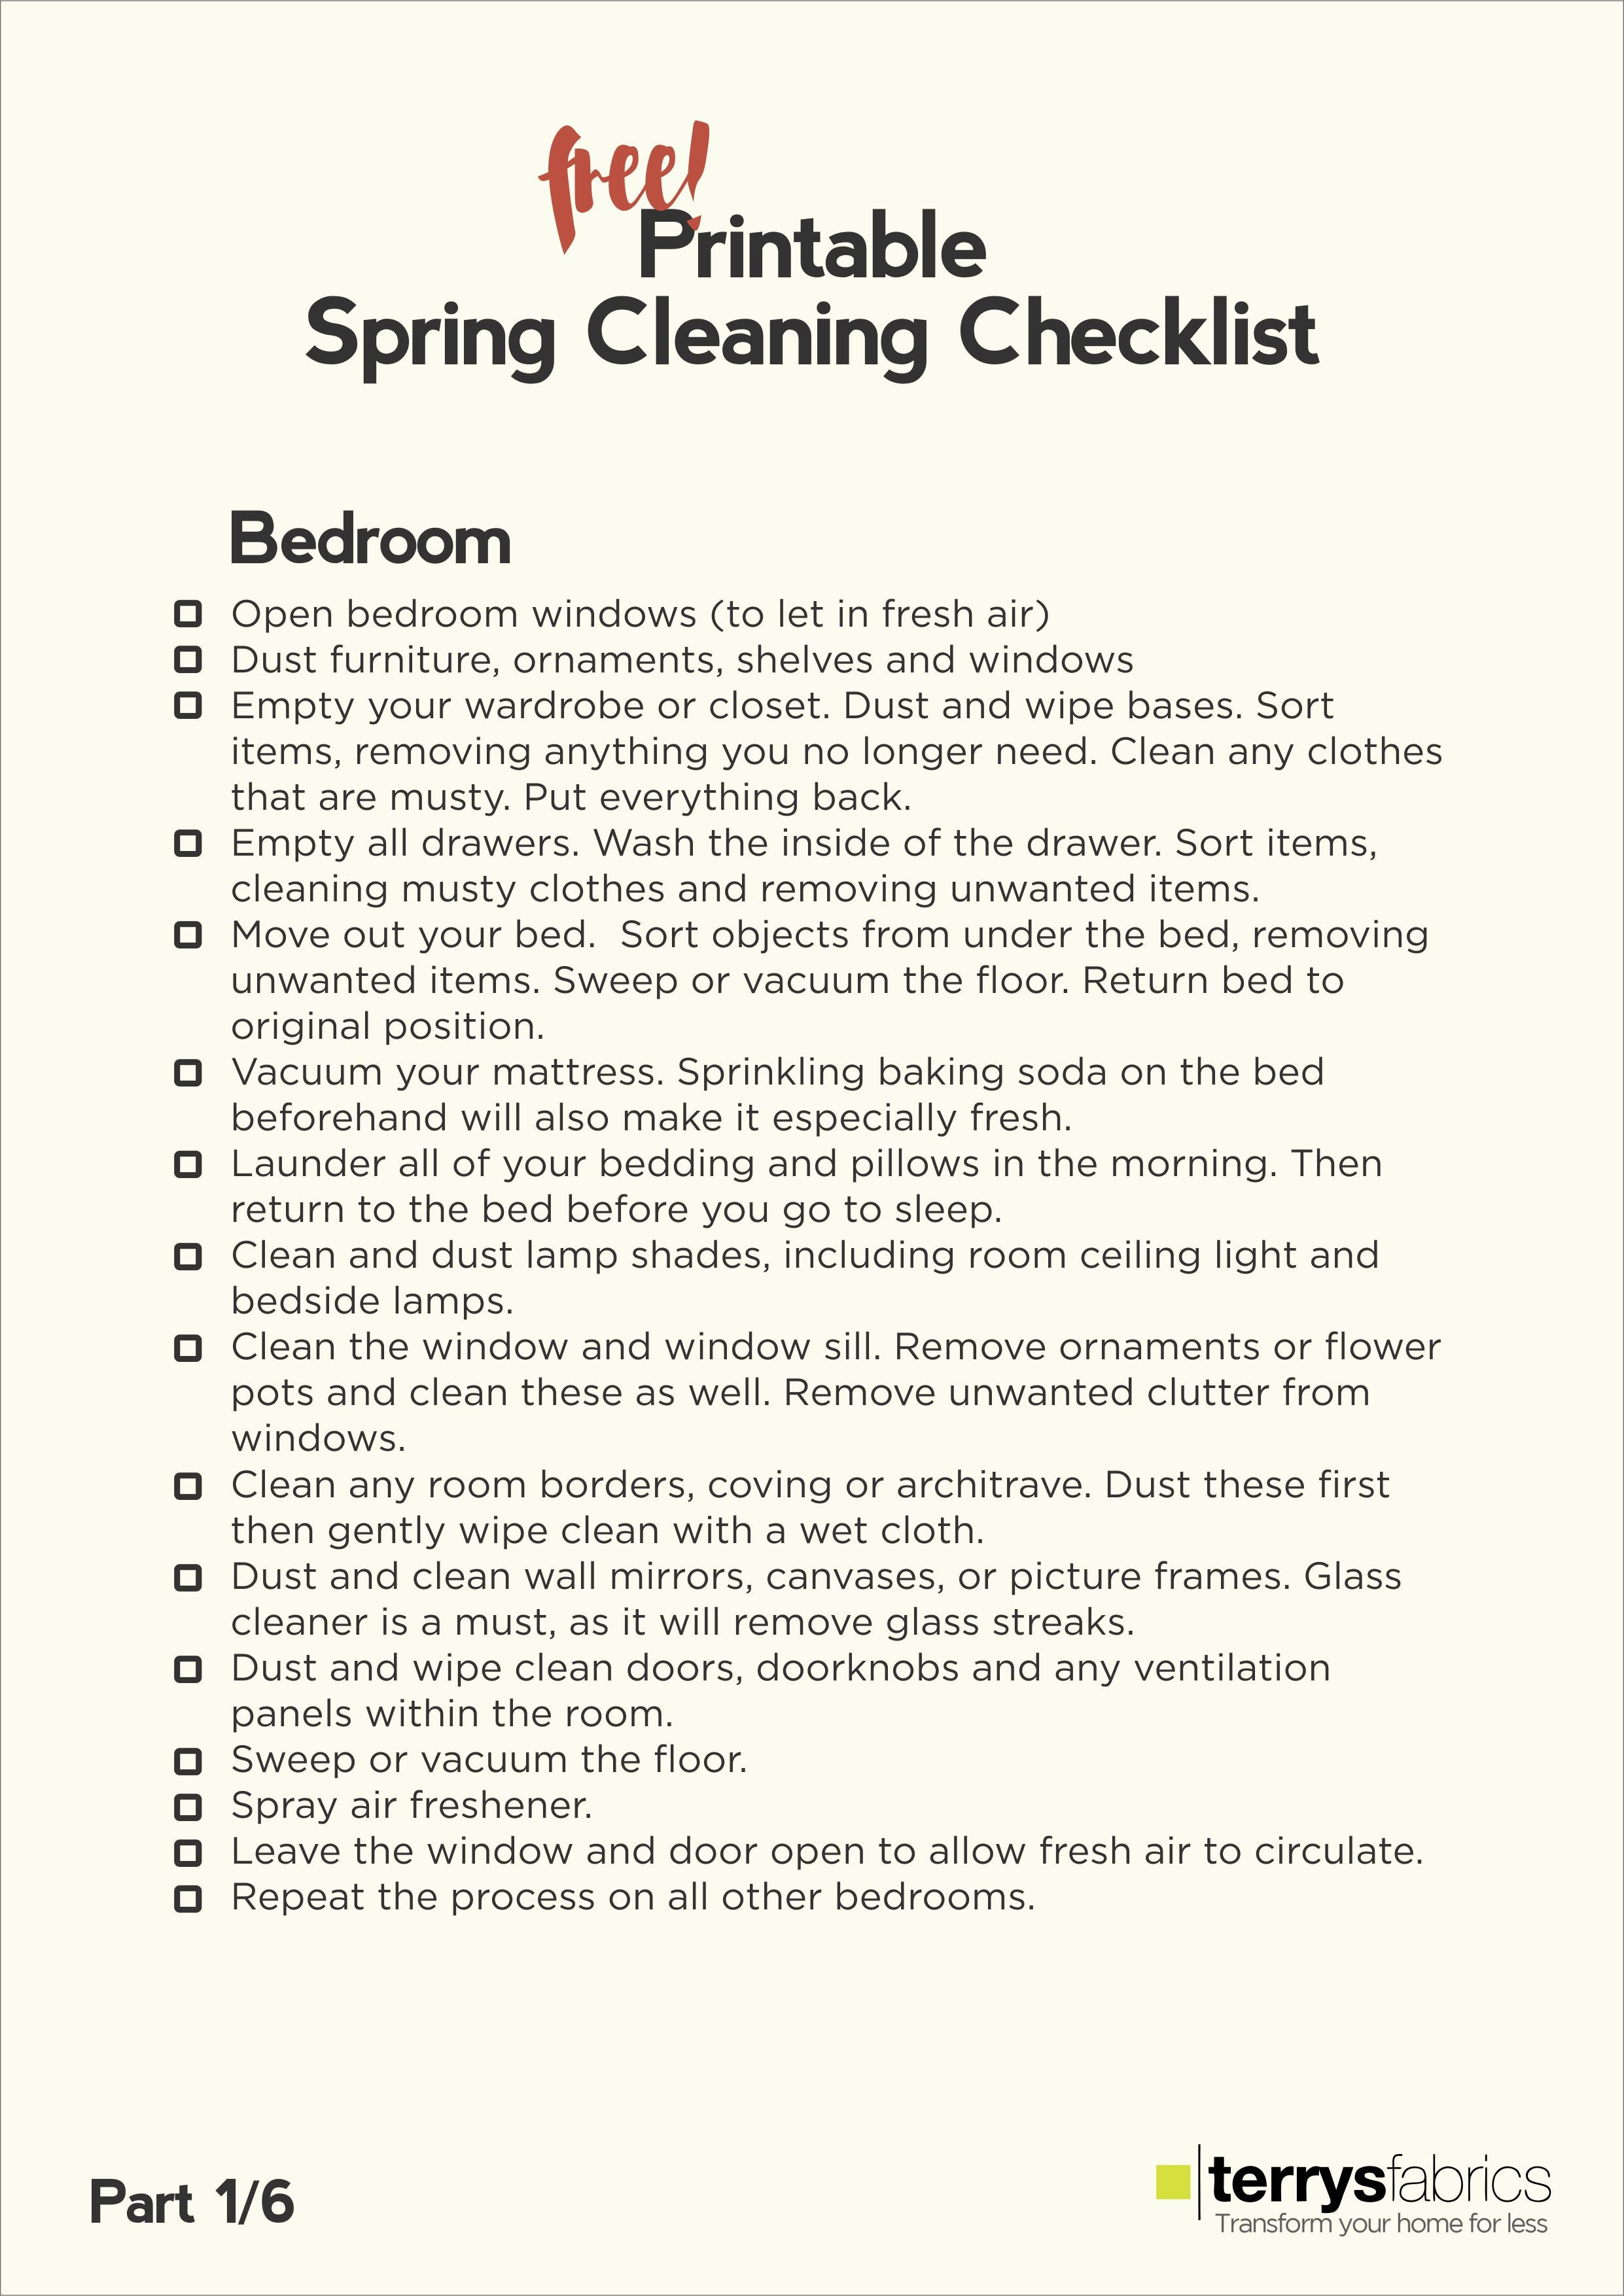 The Ultimate Spring Cleaning Free Printable Checklist 1/6 | ecogreenlove